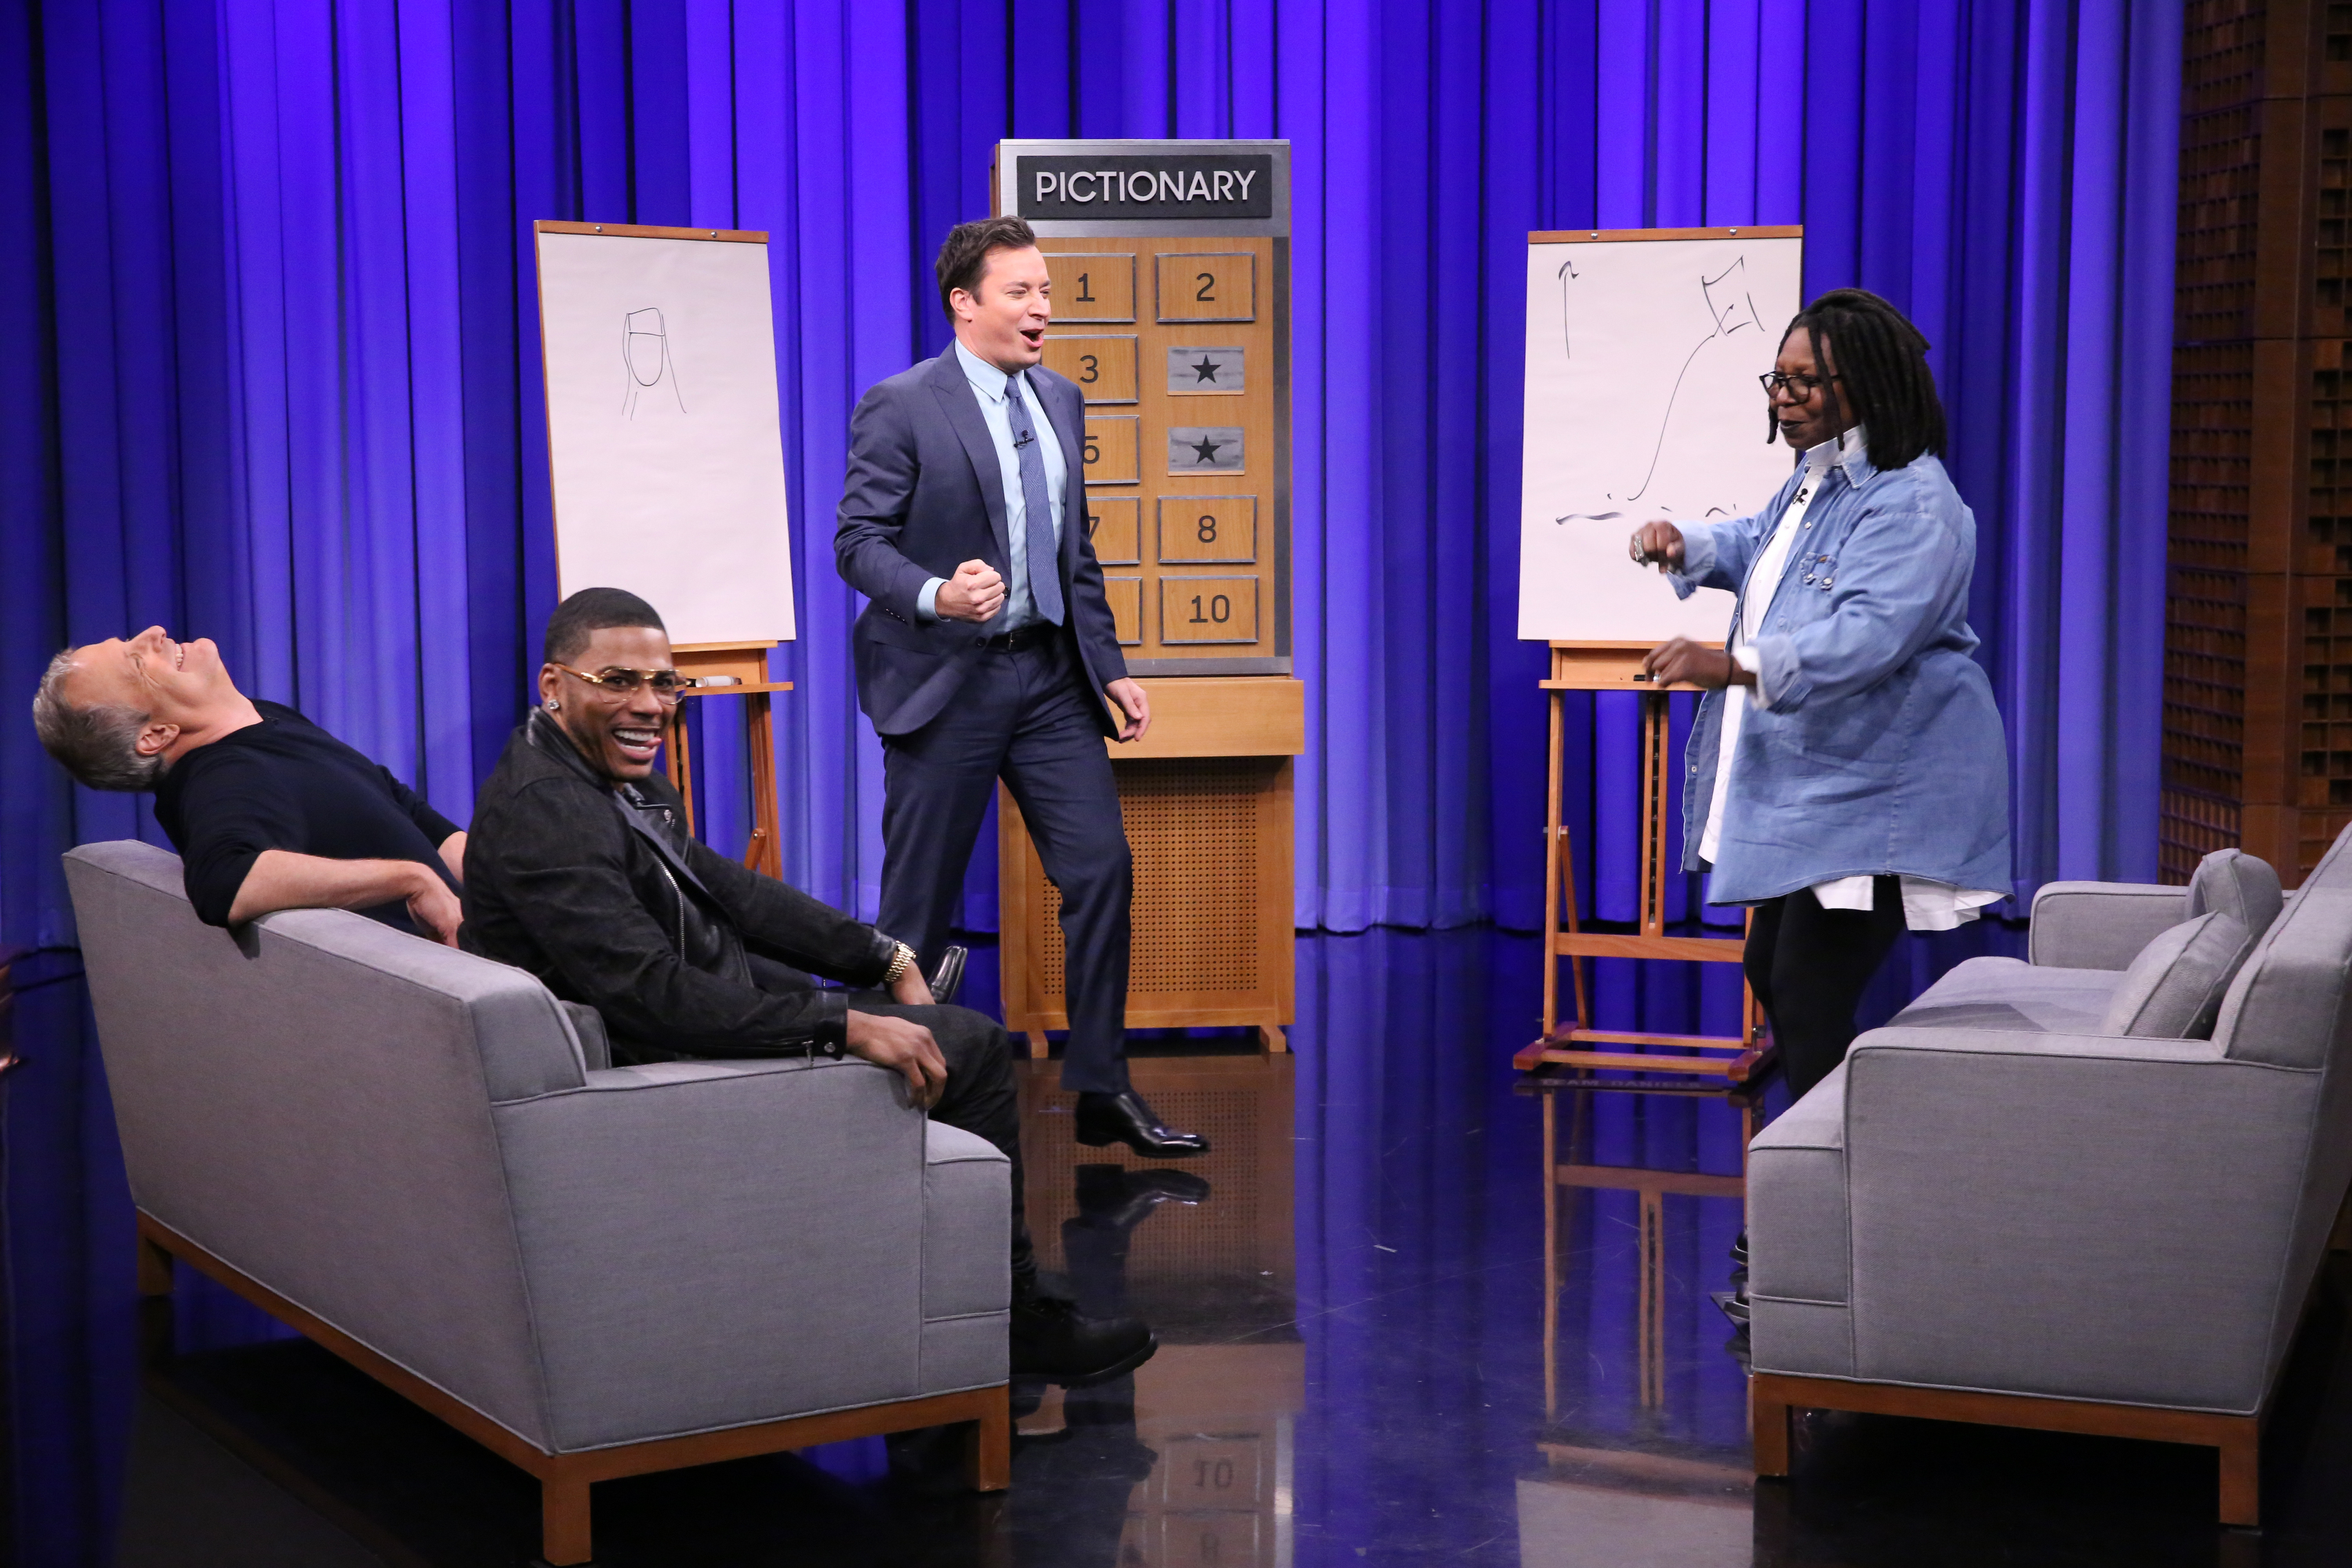 Jeff Daniels, Nelly, Jimmy Fallon,  Whoopi Goldberg play Pictionary during the Tonight Show, on October 9, 2015.